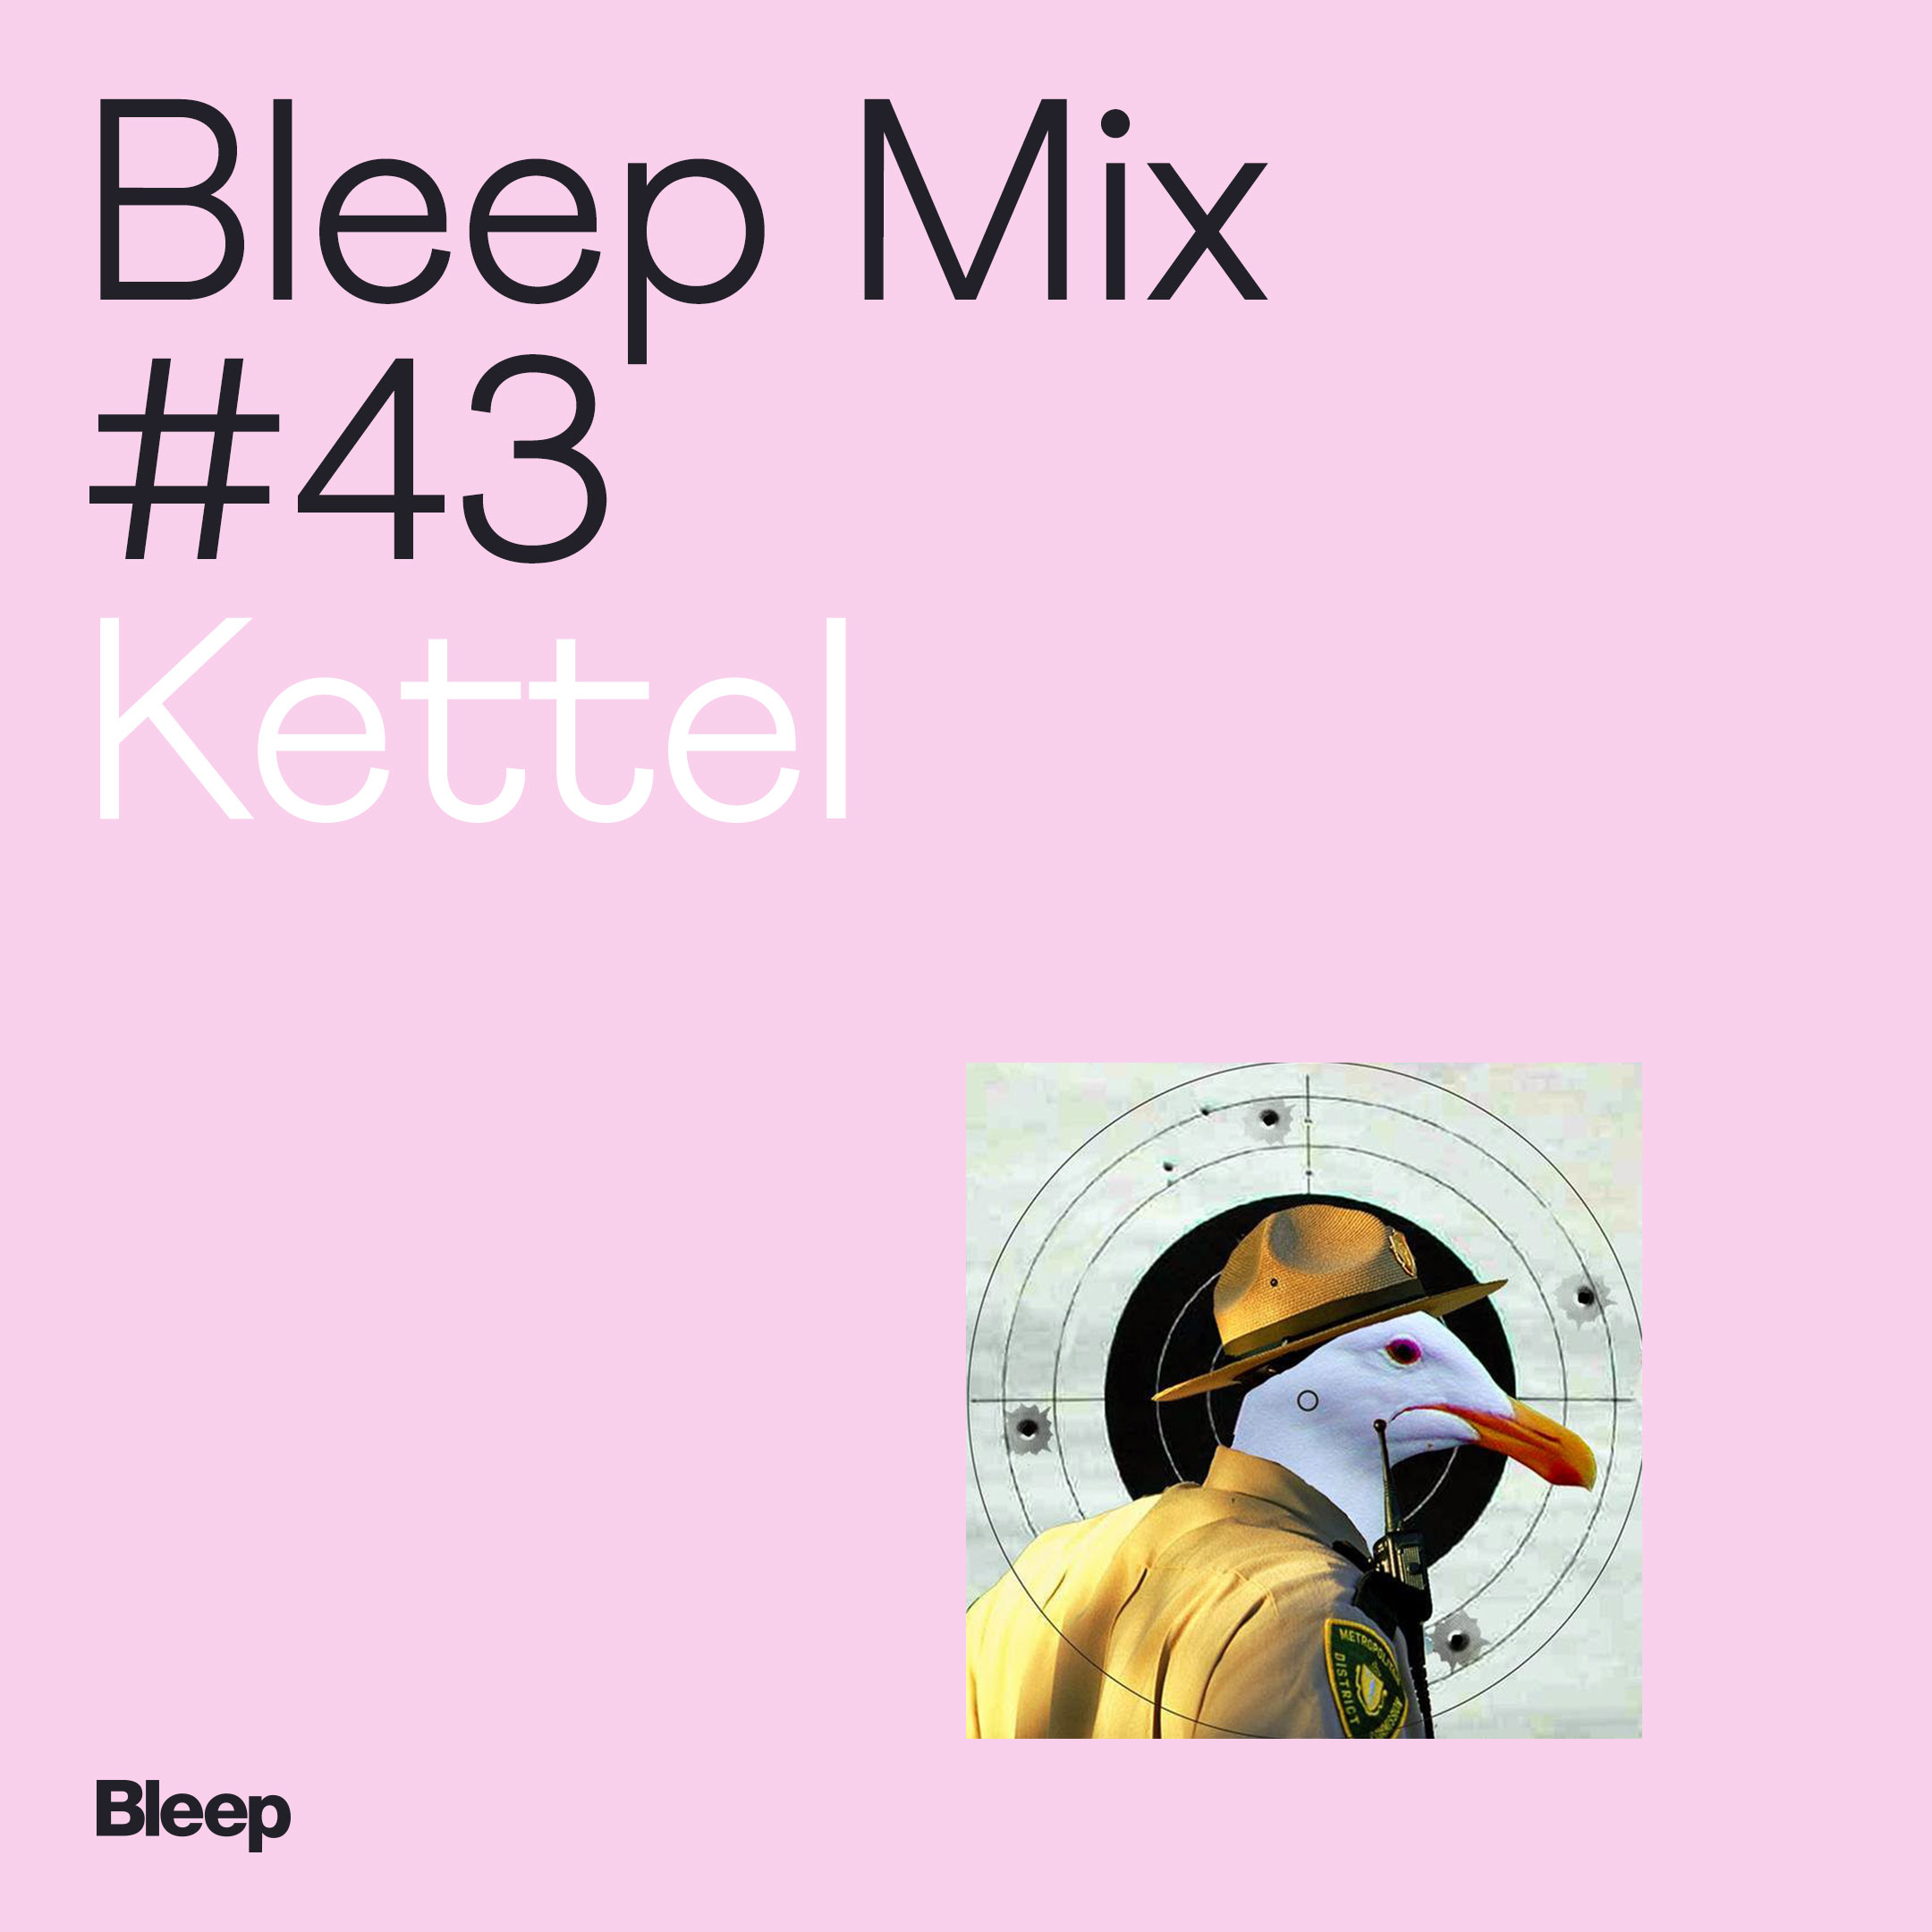 Bleep Mix #43 - Kettel